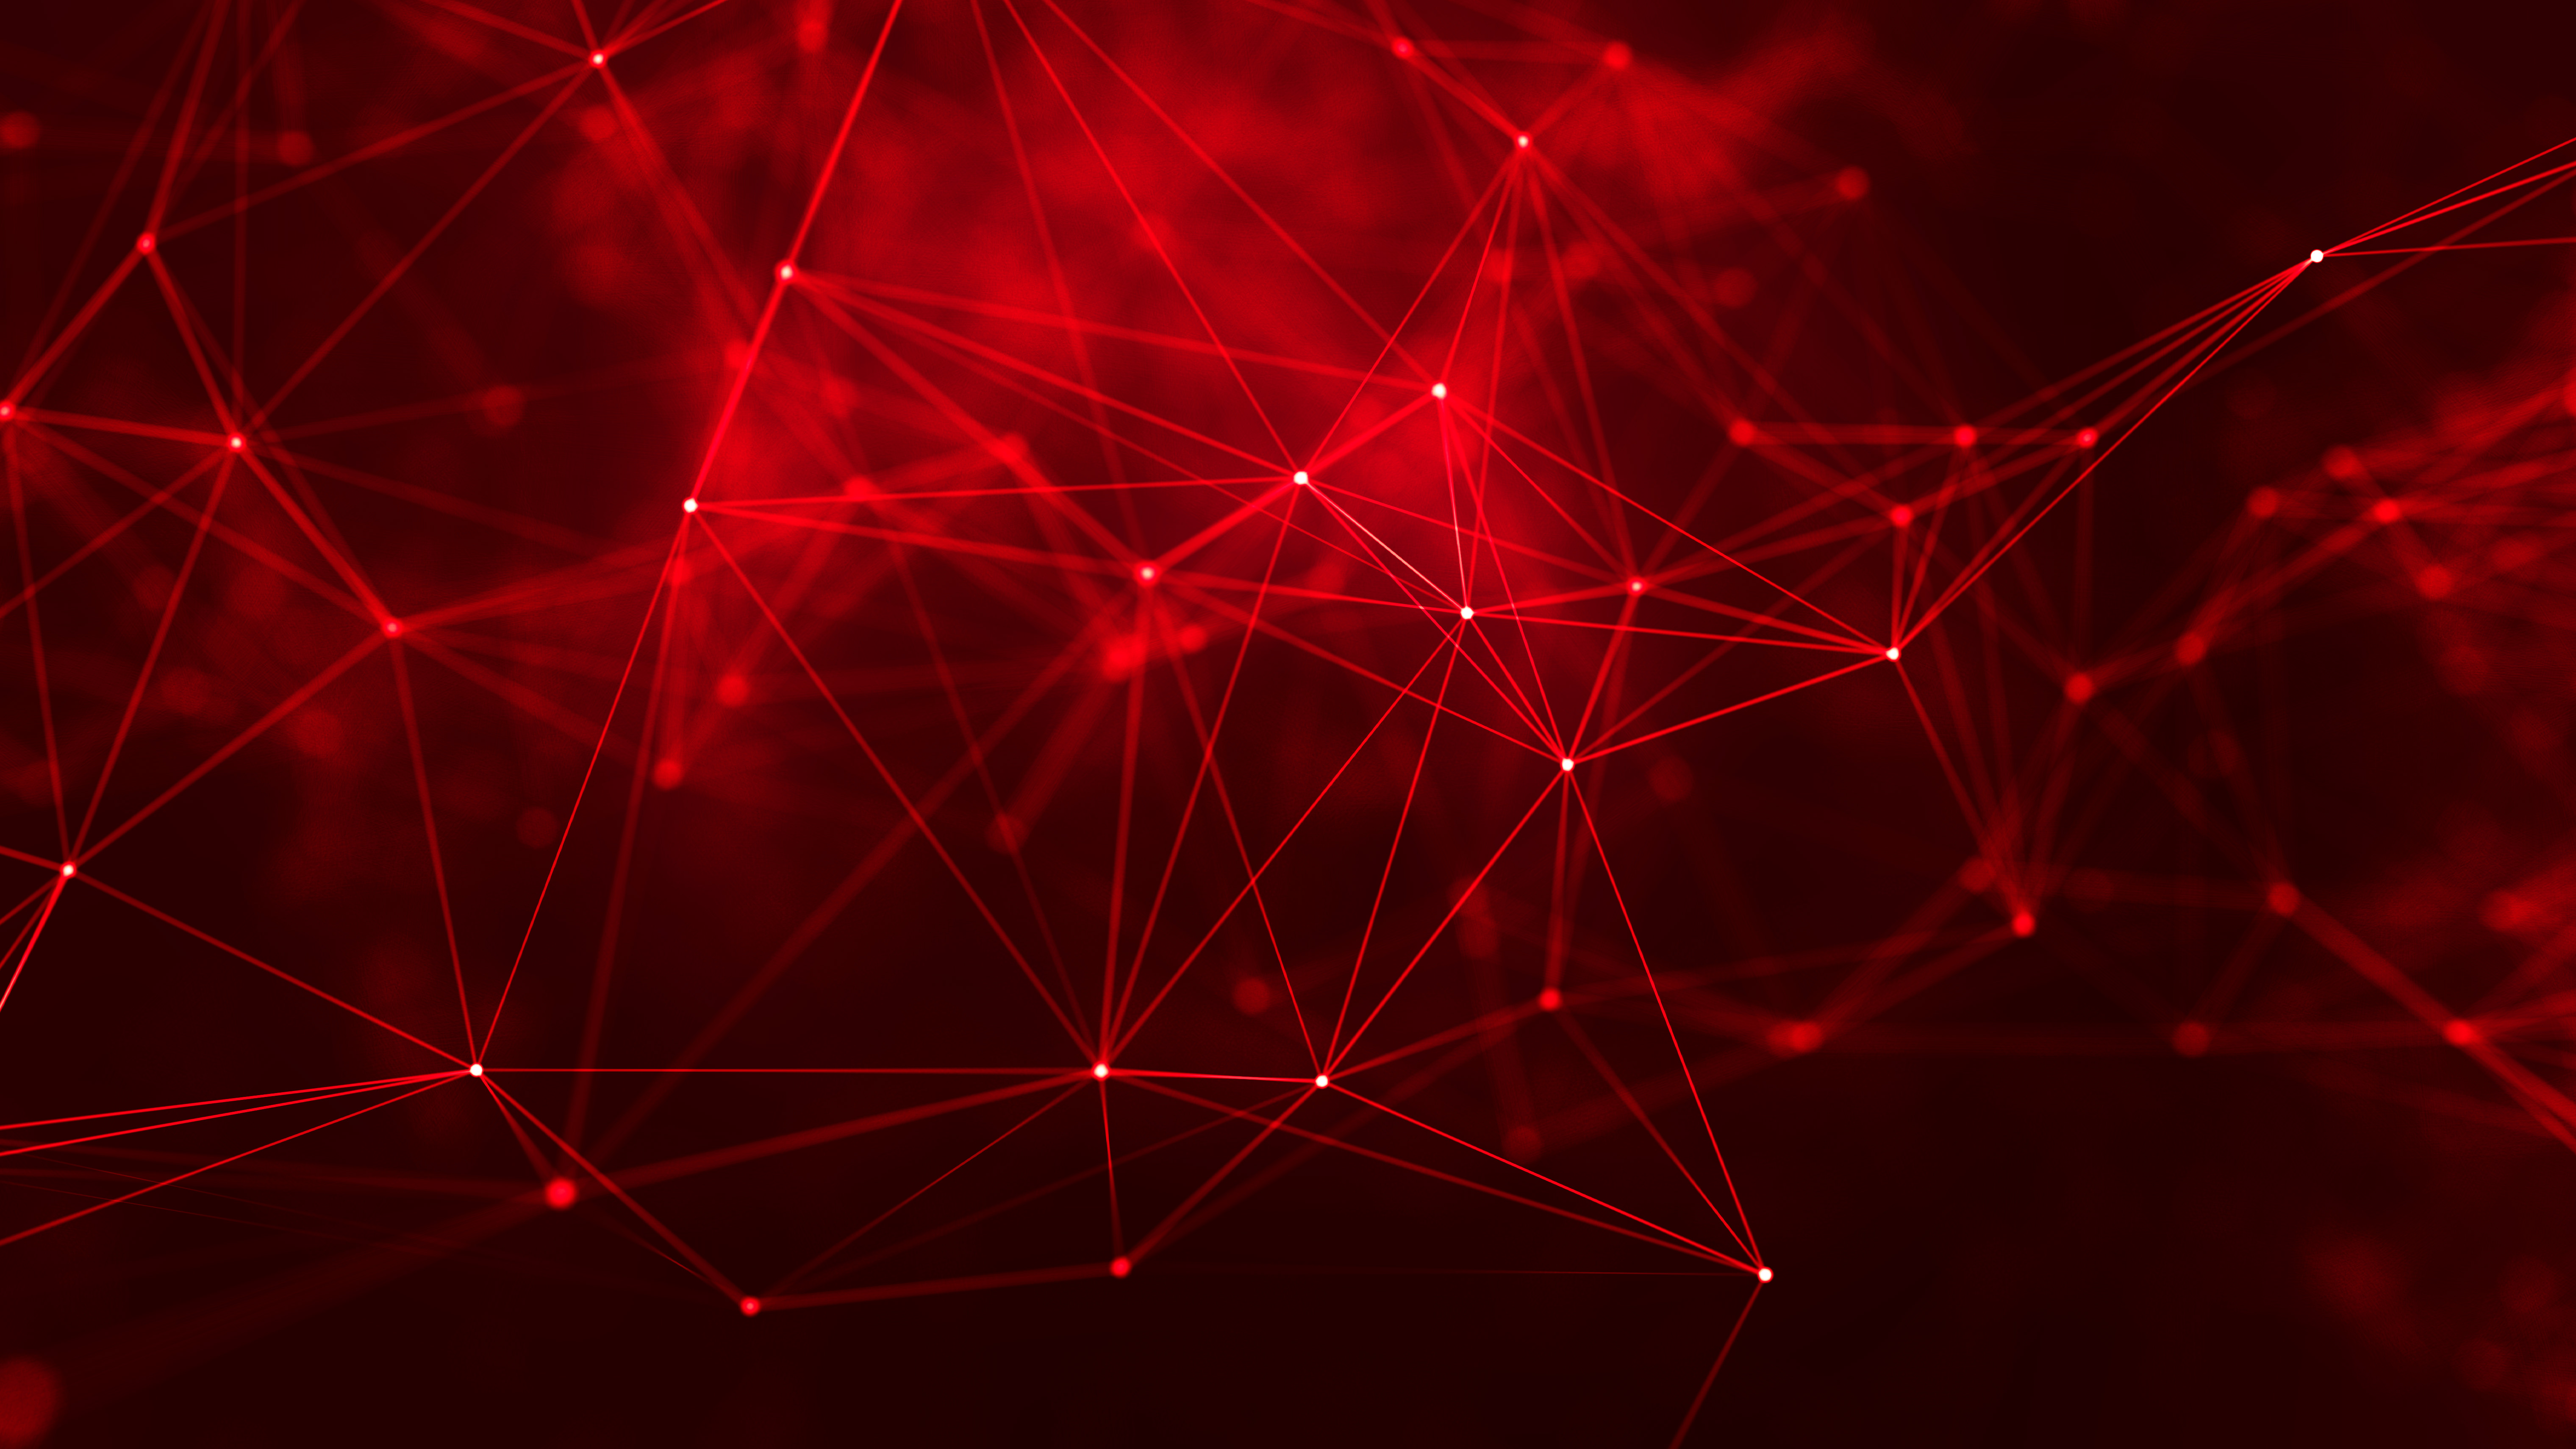 General 6080x3420 geometry cyberspace digital art red lines abstract red background